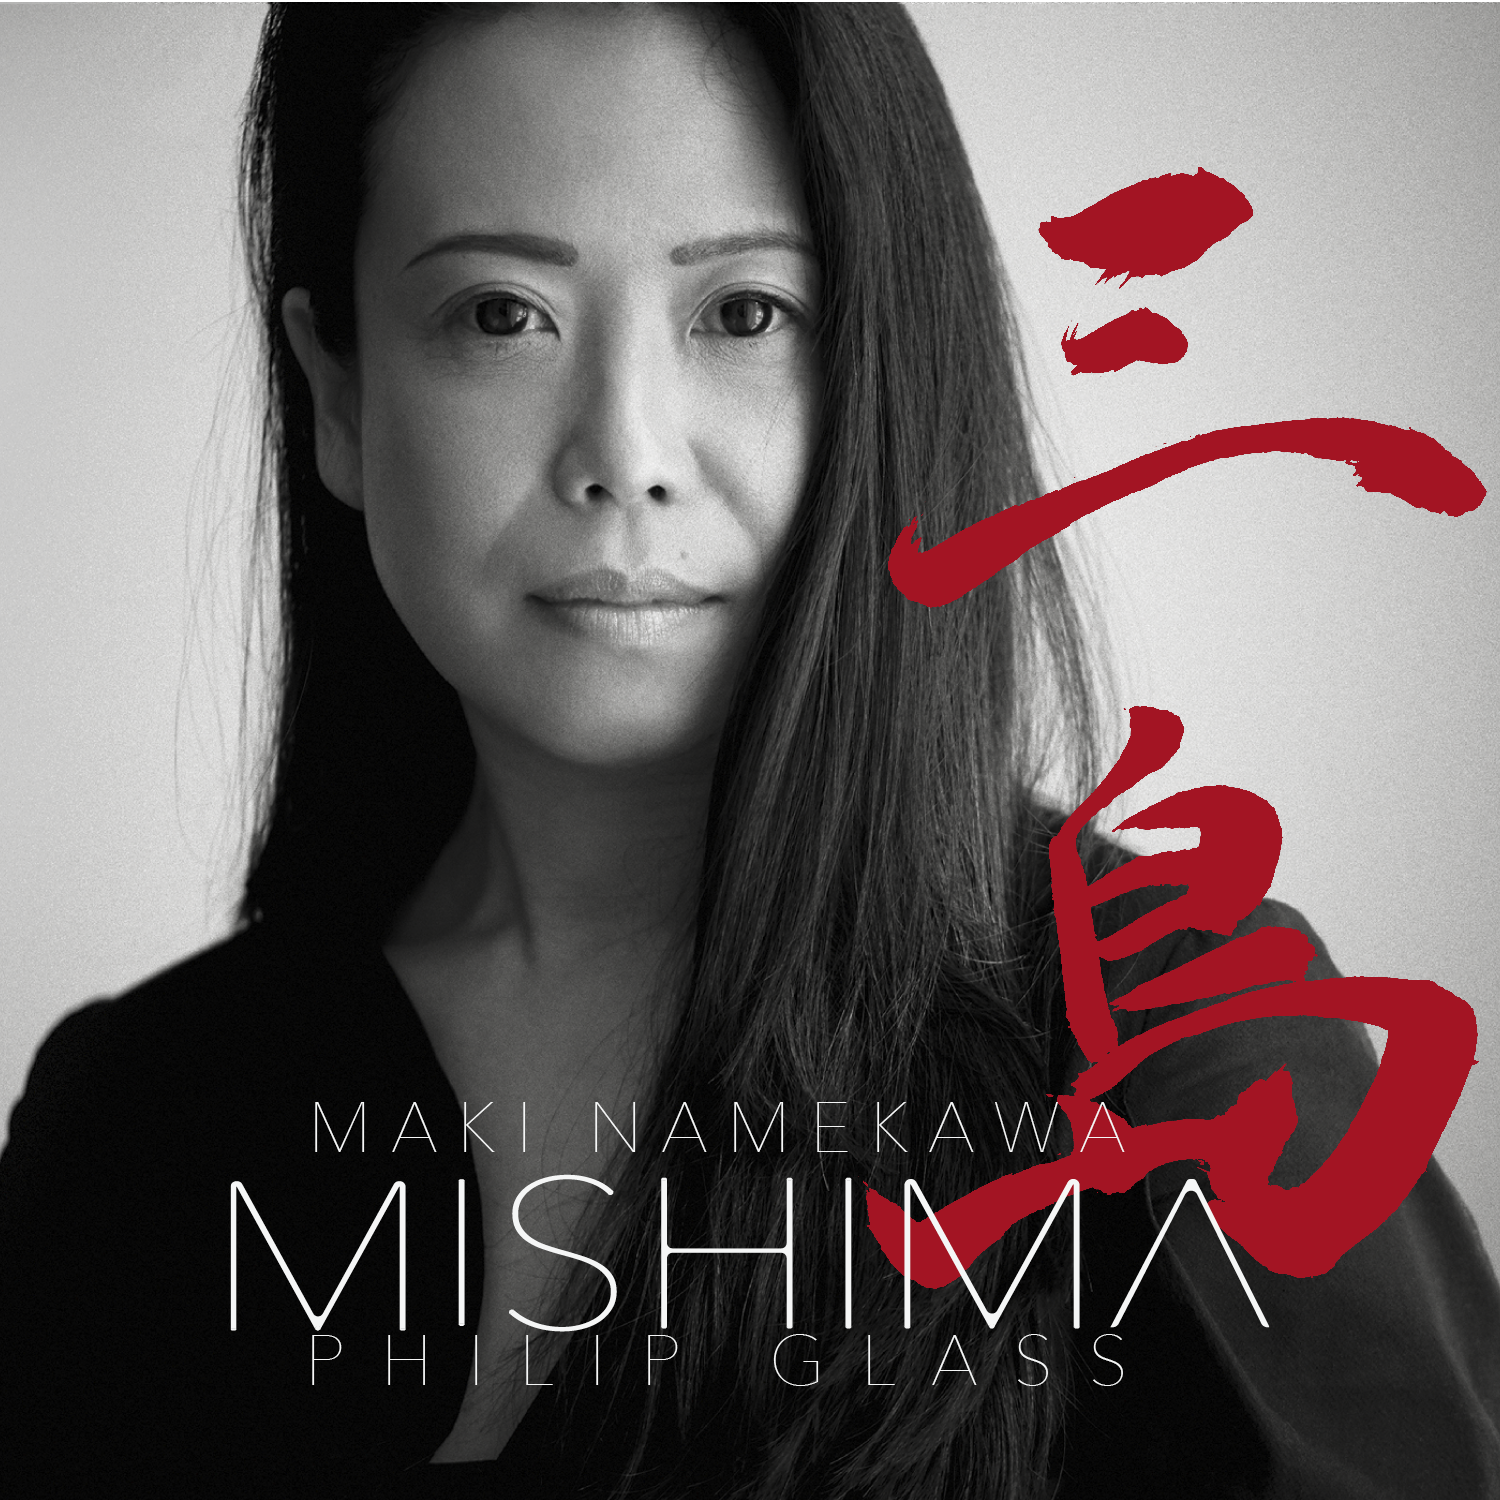 MISHIMA | Maki Namekawa plays Philip Glass